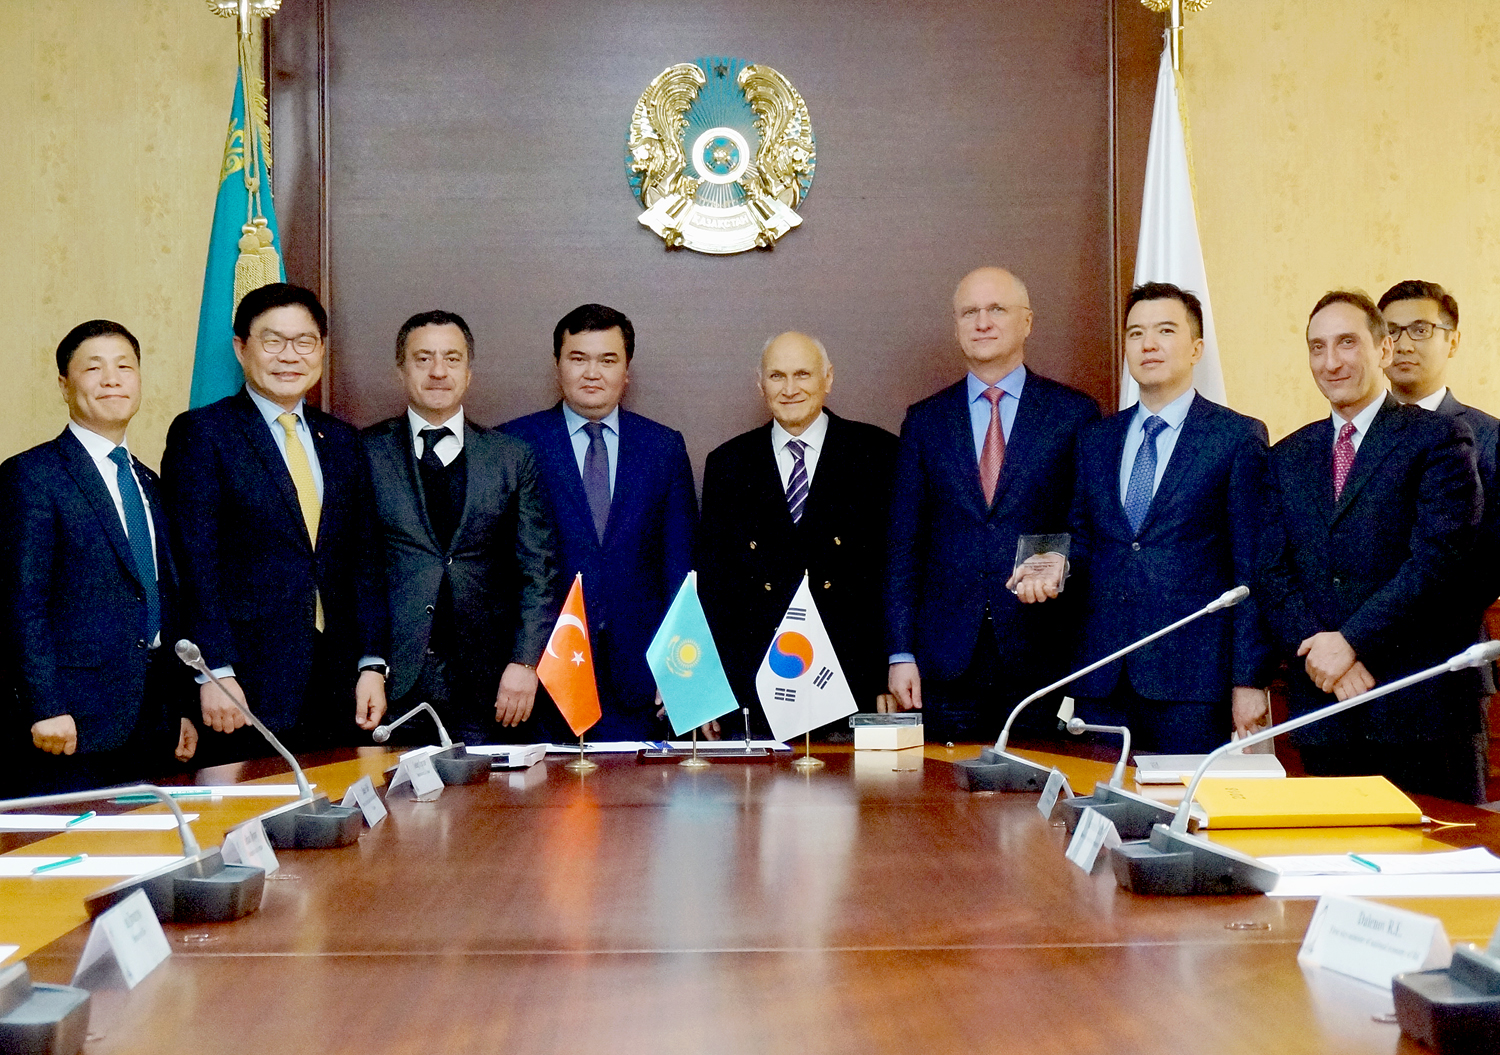 SK E&C won an US$737 million worth investment project to build roads in Kazakhstan together with Korea Highway Corporation.